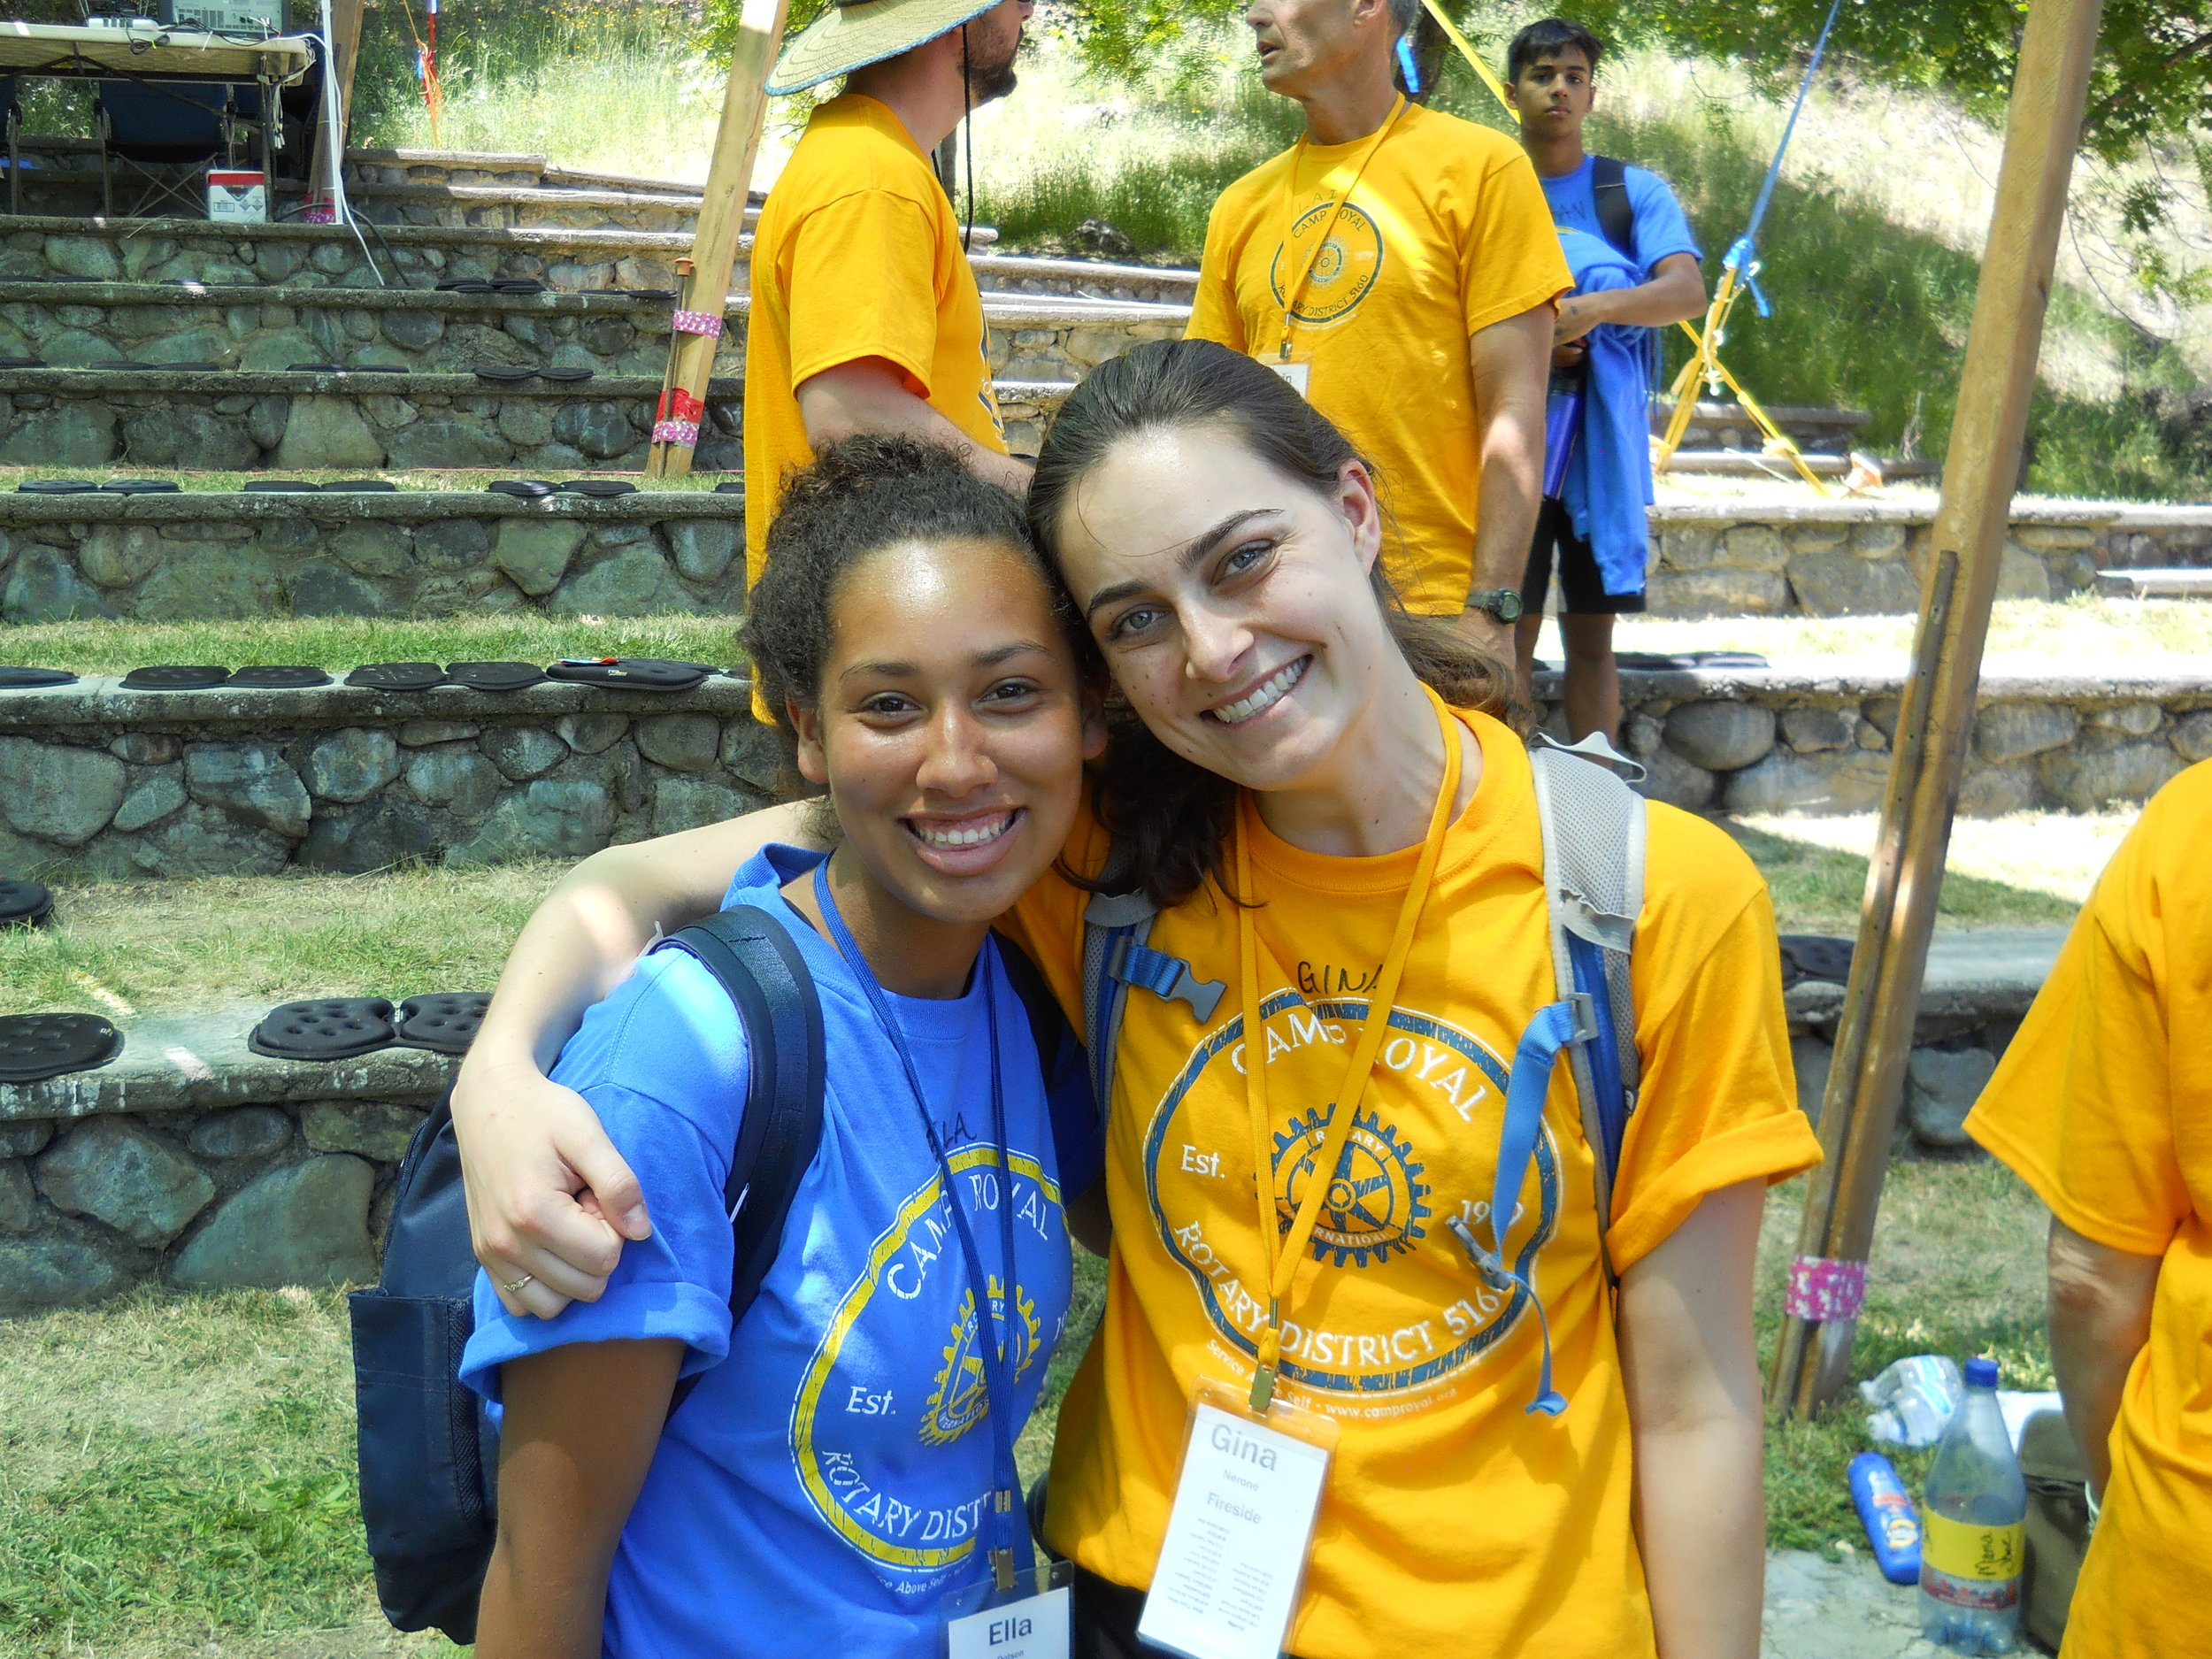 Gina Nerone - FiresideGina's a two-time counselor and also attended camp as a junior in high school. This year Gina touched many campers with sharing her life struggles and let everyone know they are not alone. Her fun loving energy can be felt all over the camp. The board breaking exercise is her favorite thing about camp because she struggled as a camper. The feeling when she broke her board was unforgettable.